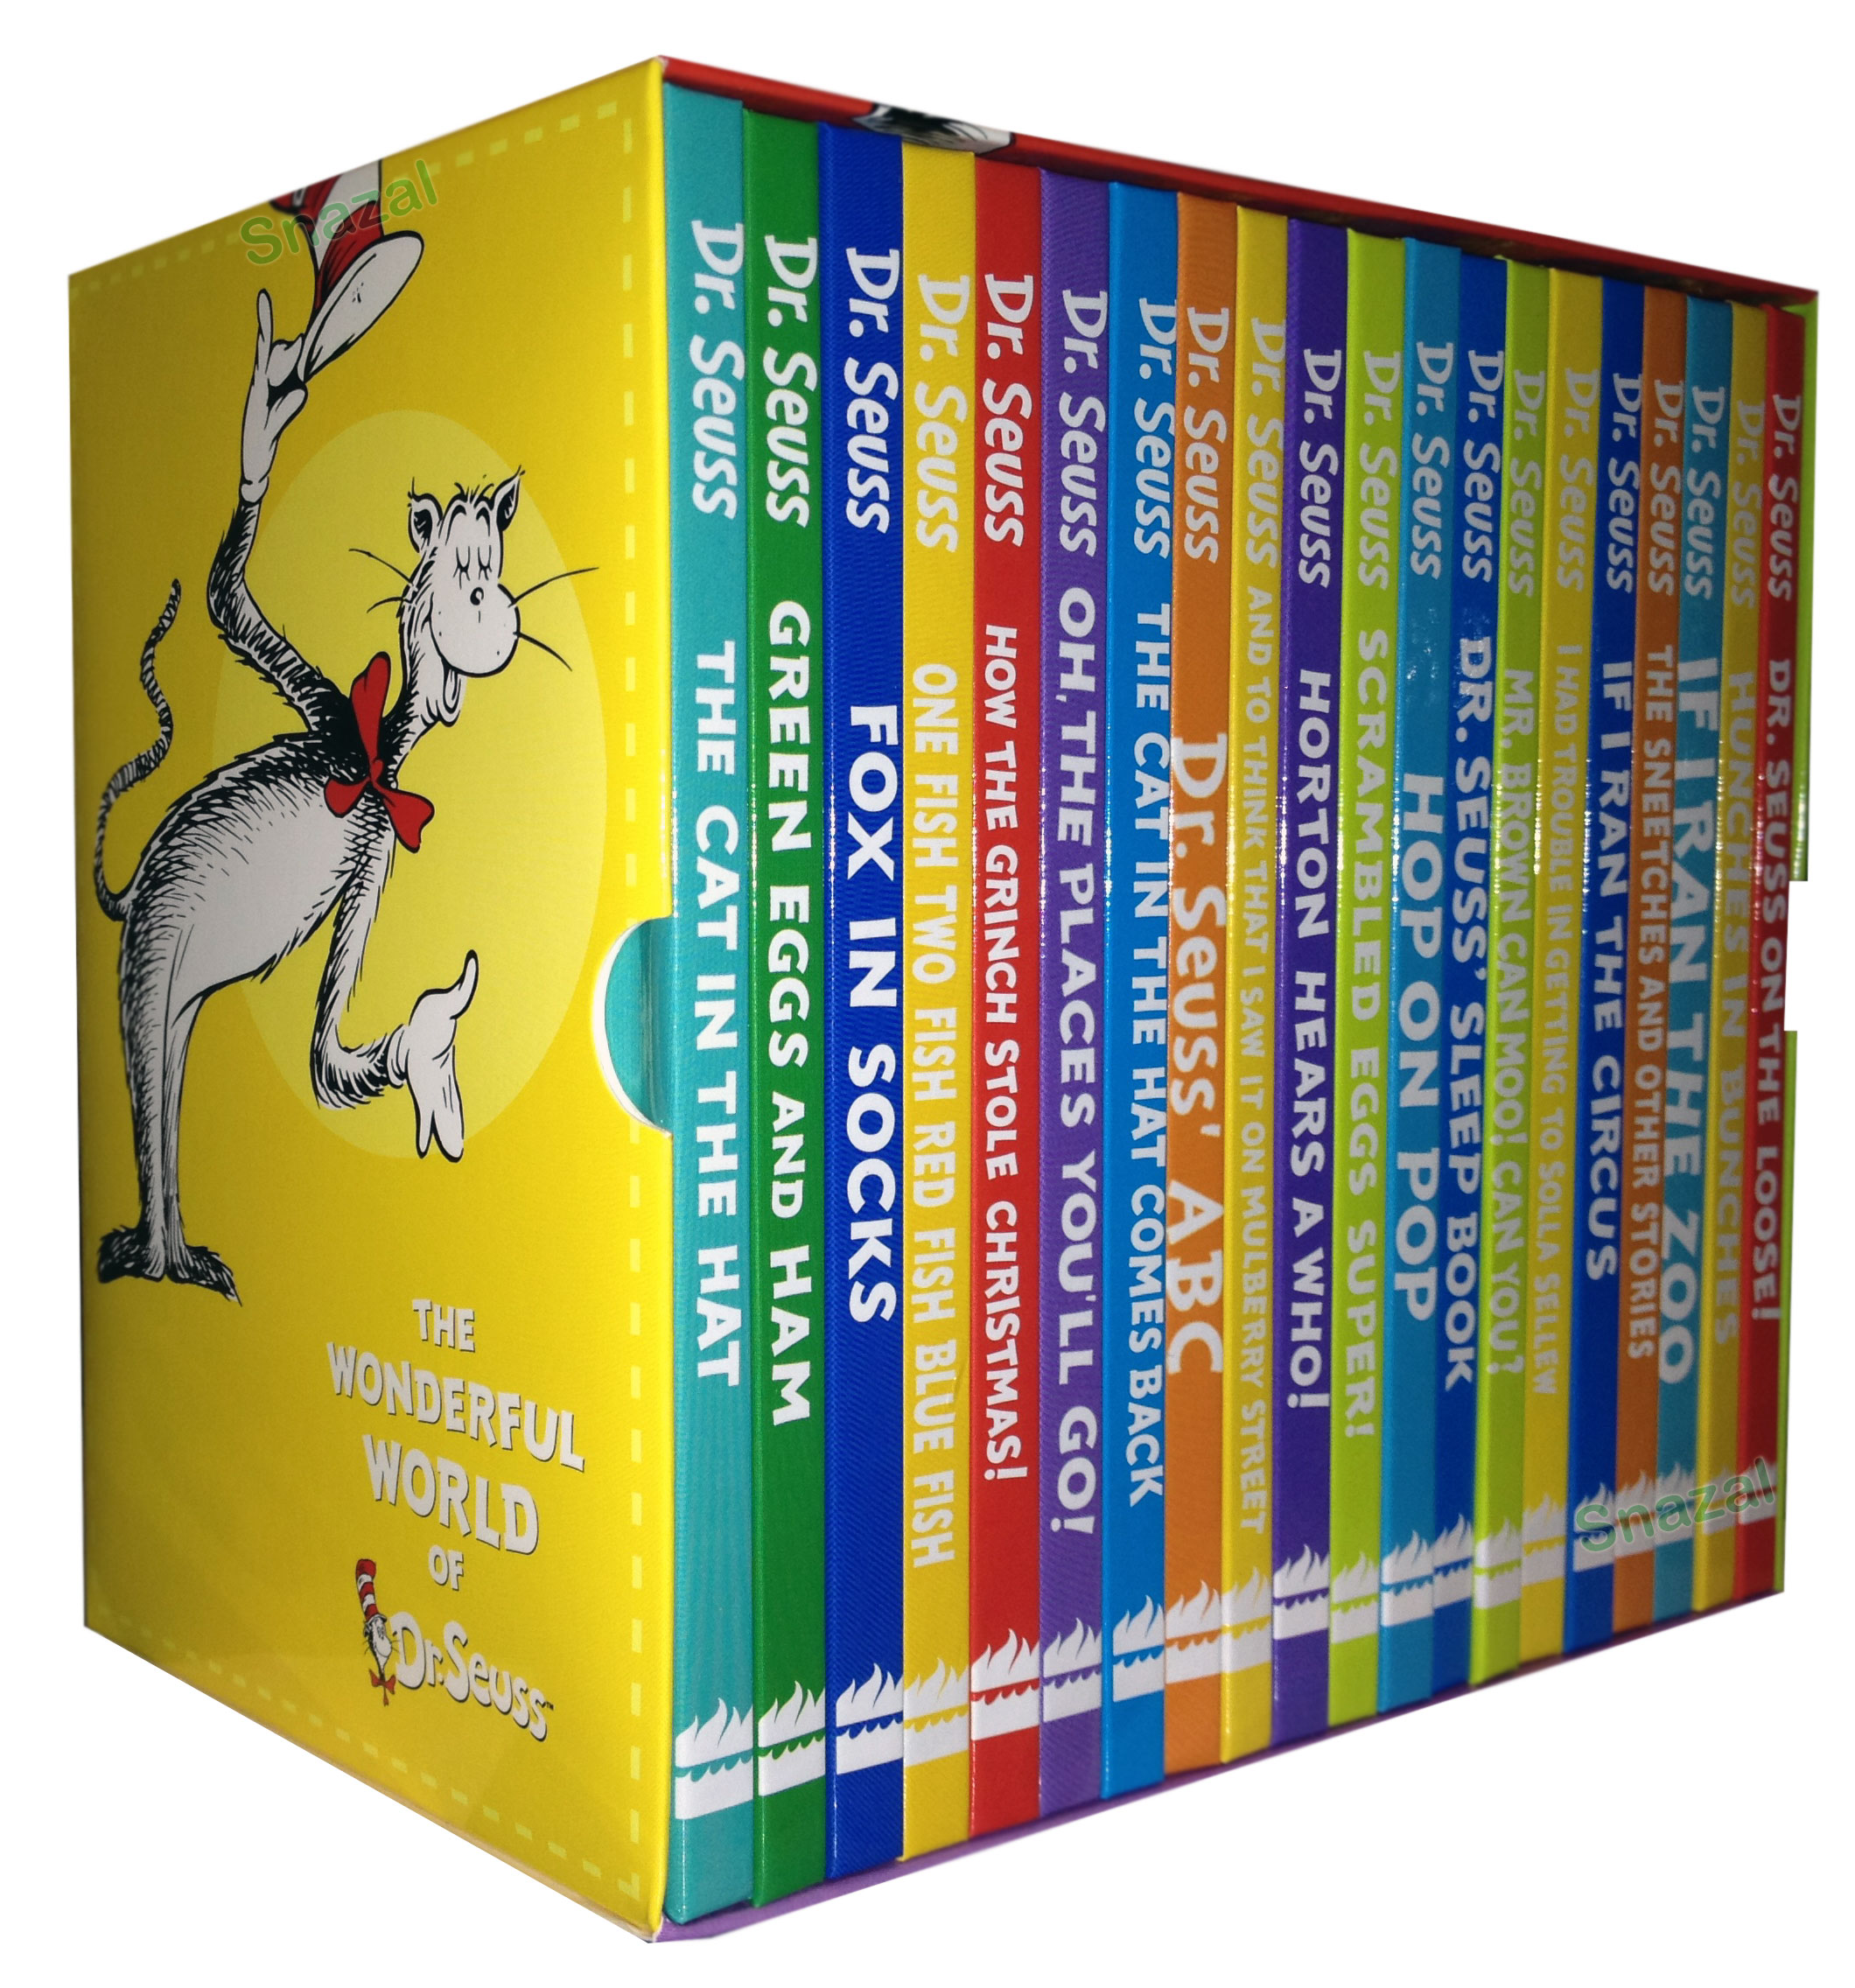 dr suess bibliography This page includes a brief dr seuss biography or, more accurately, a biography of theodor seuss geisel, who became one of the world's best-known and most-loved children's authors.